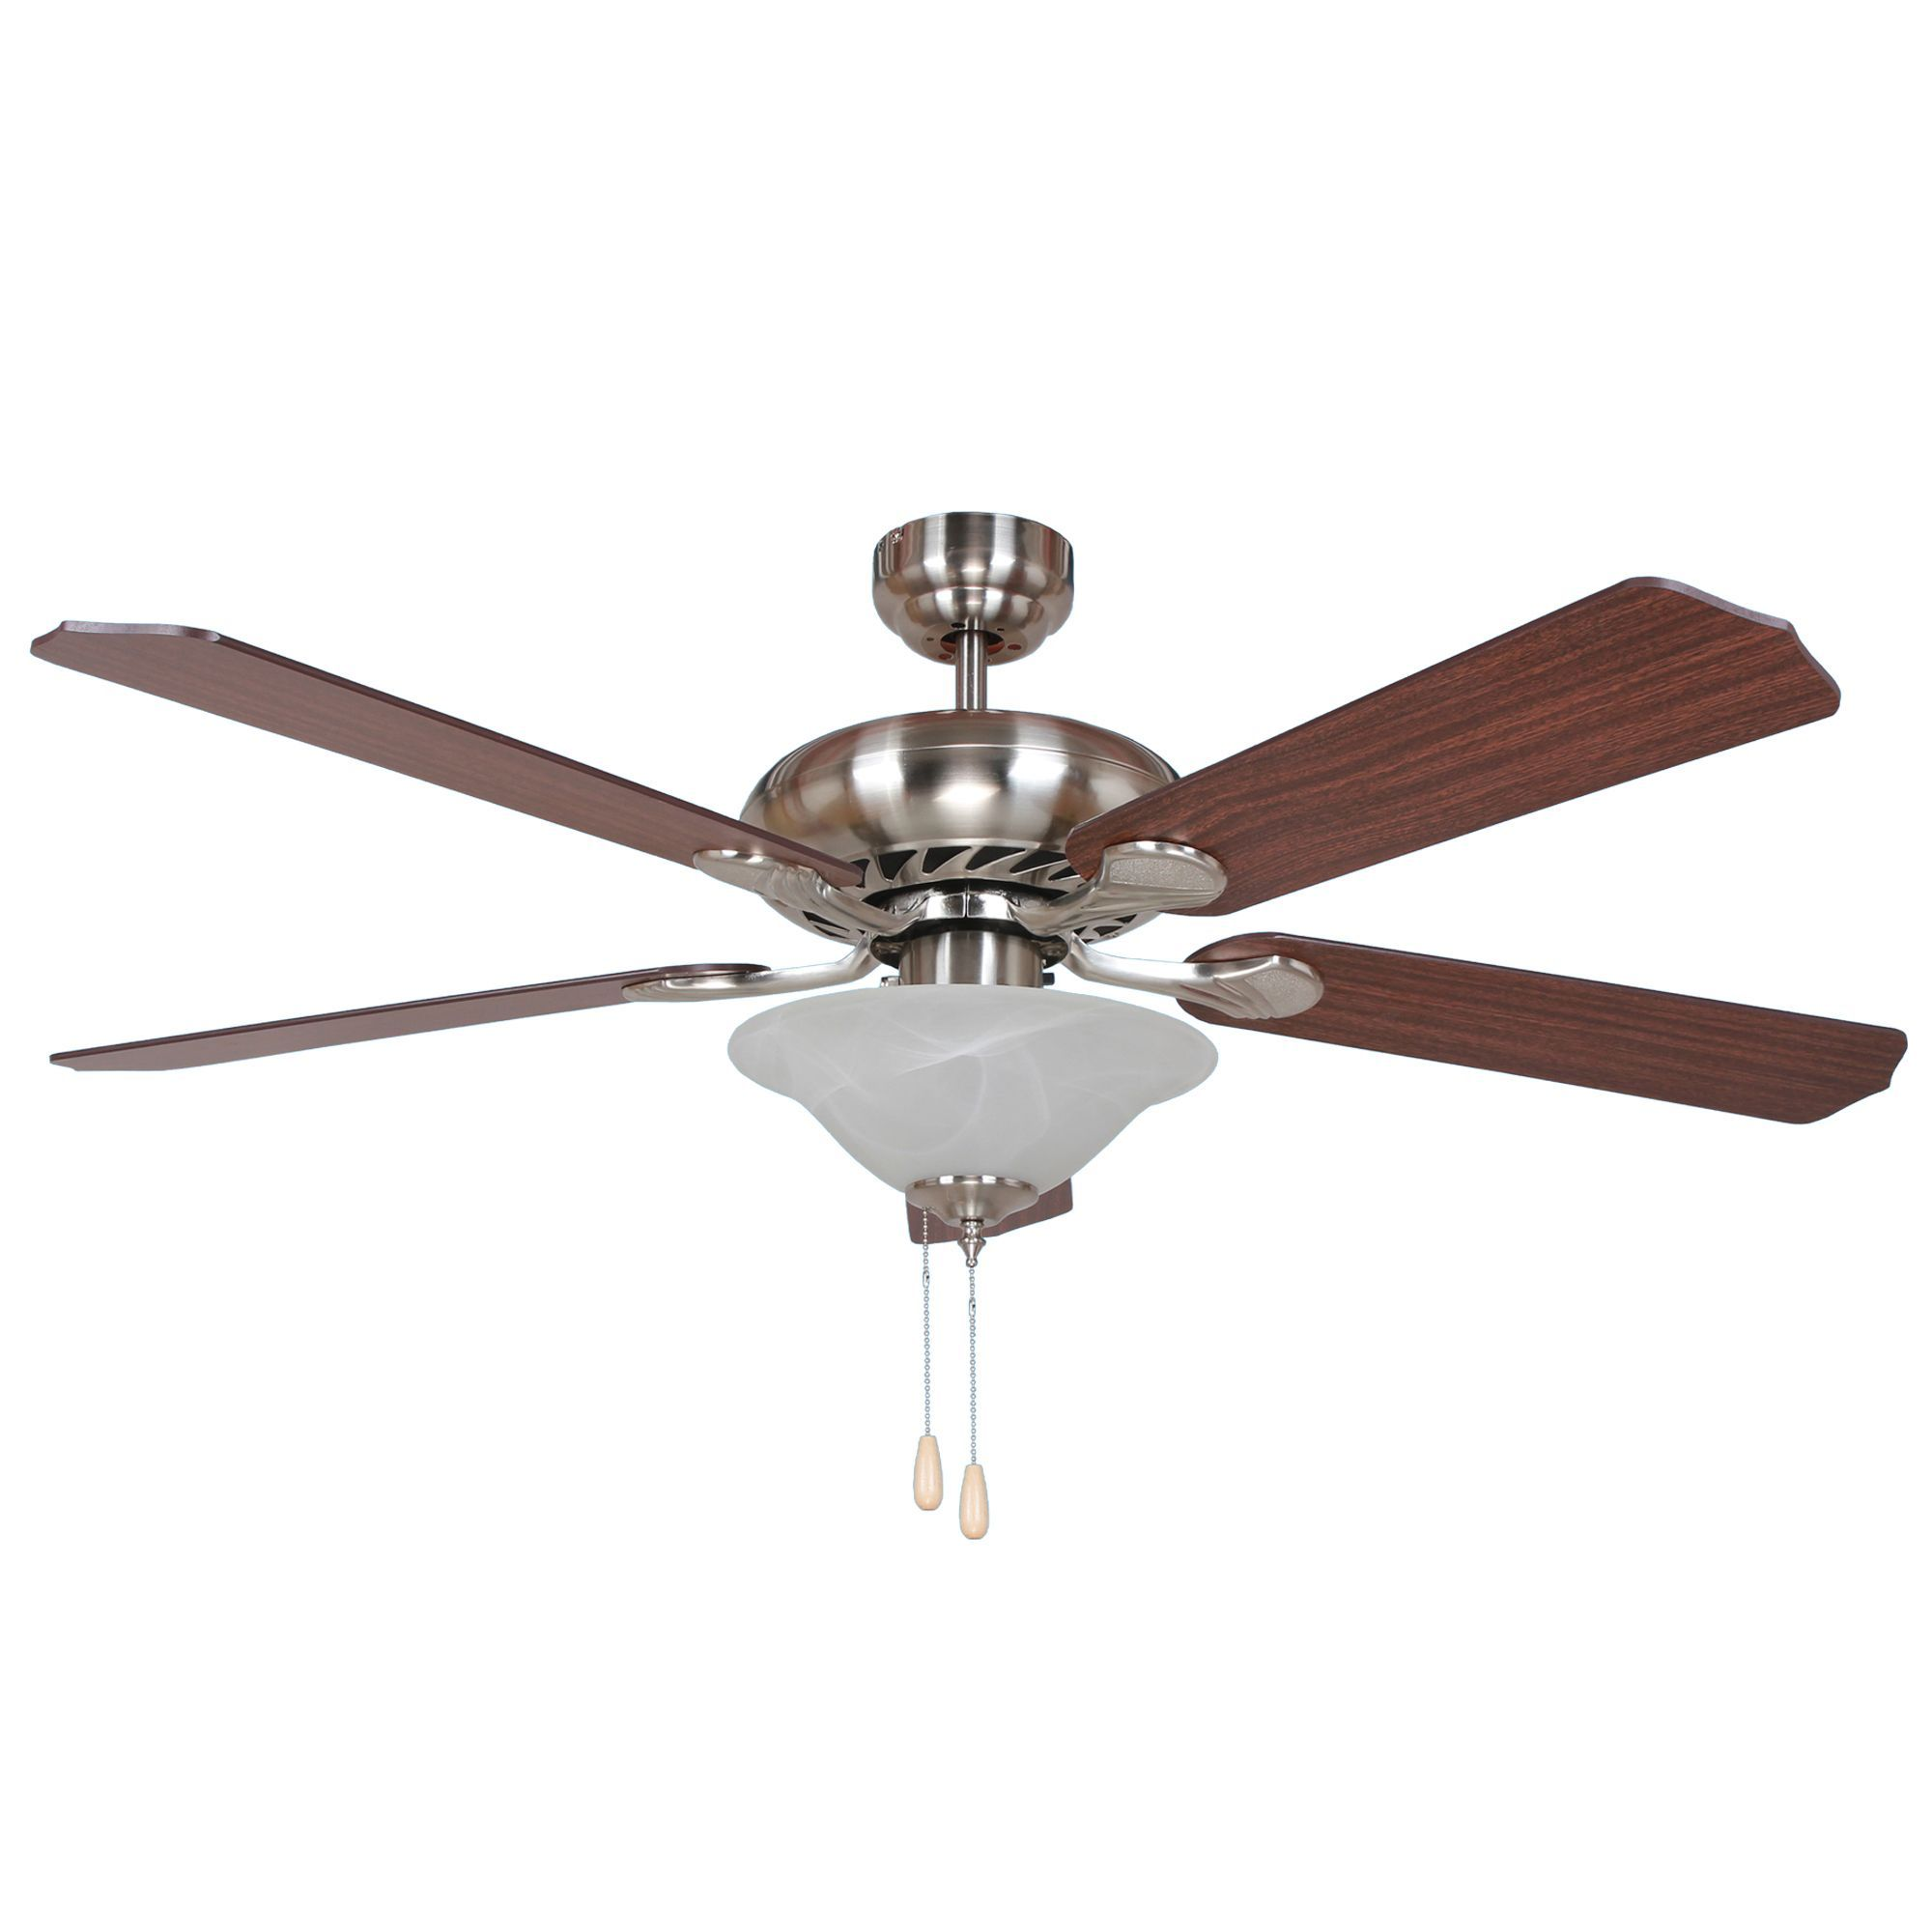 Y-Decor Bodi Bright Brushed Finish 52inch Rounded Body Ceiling Fan ...